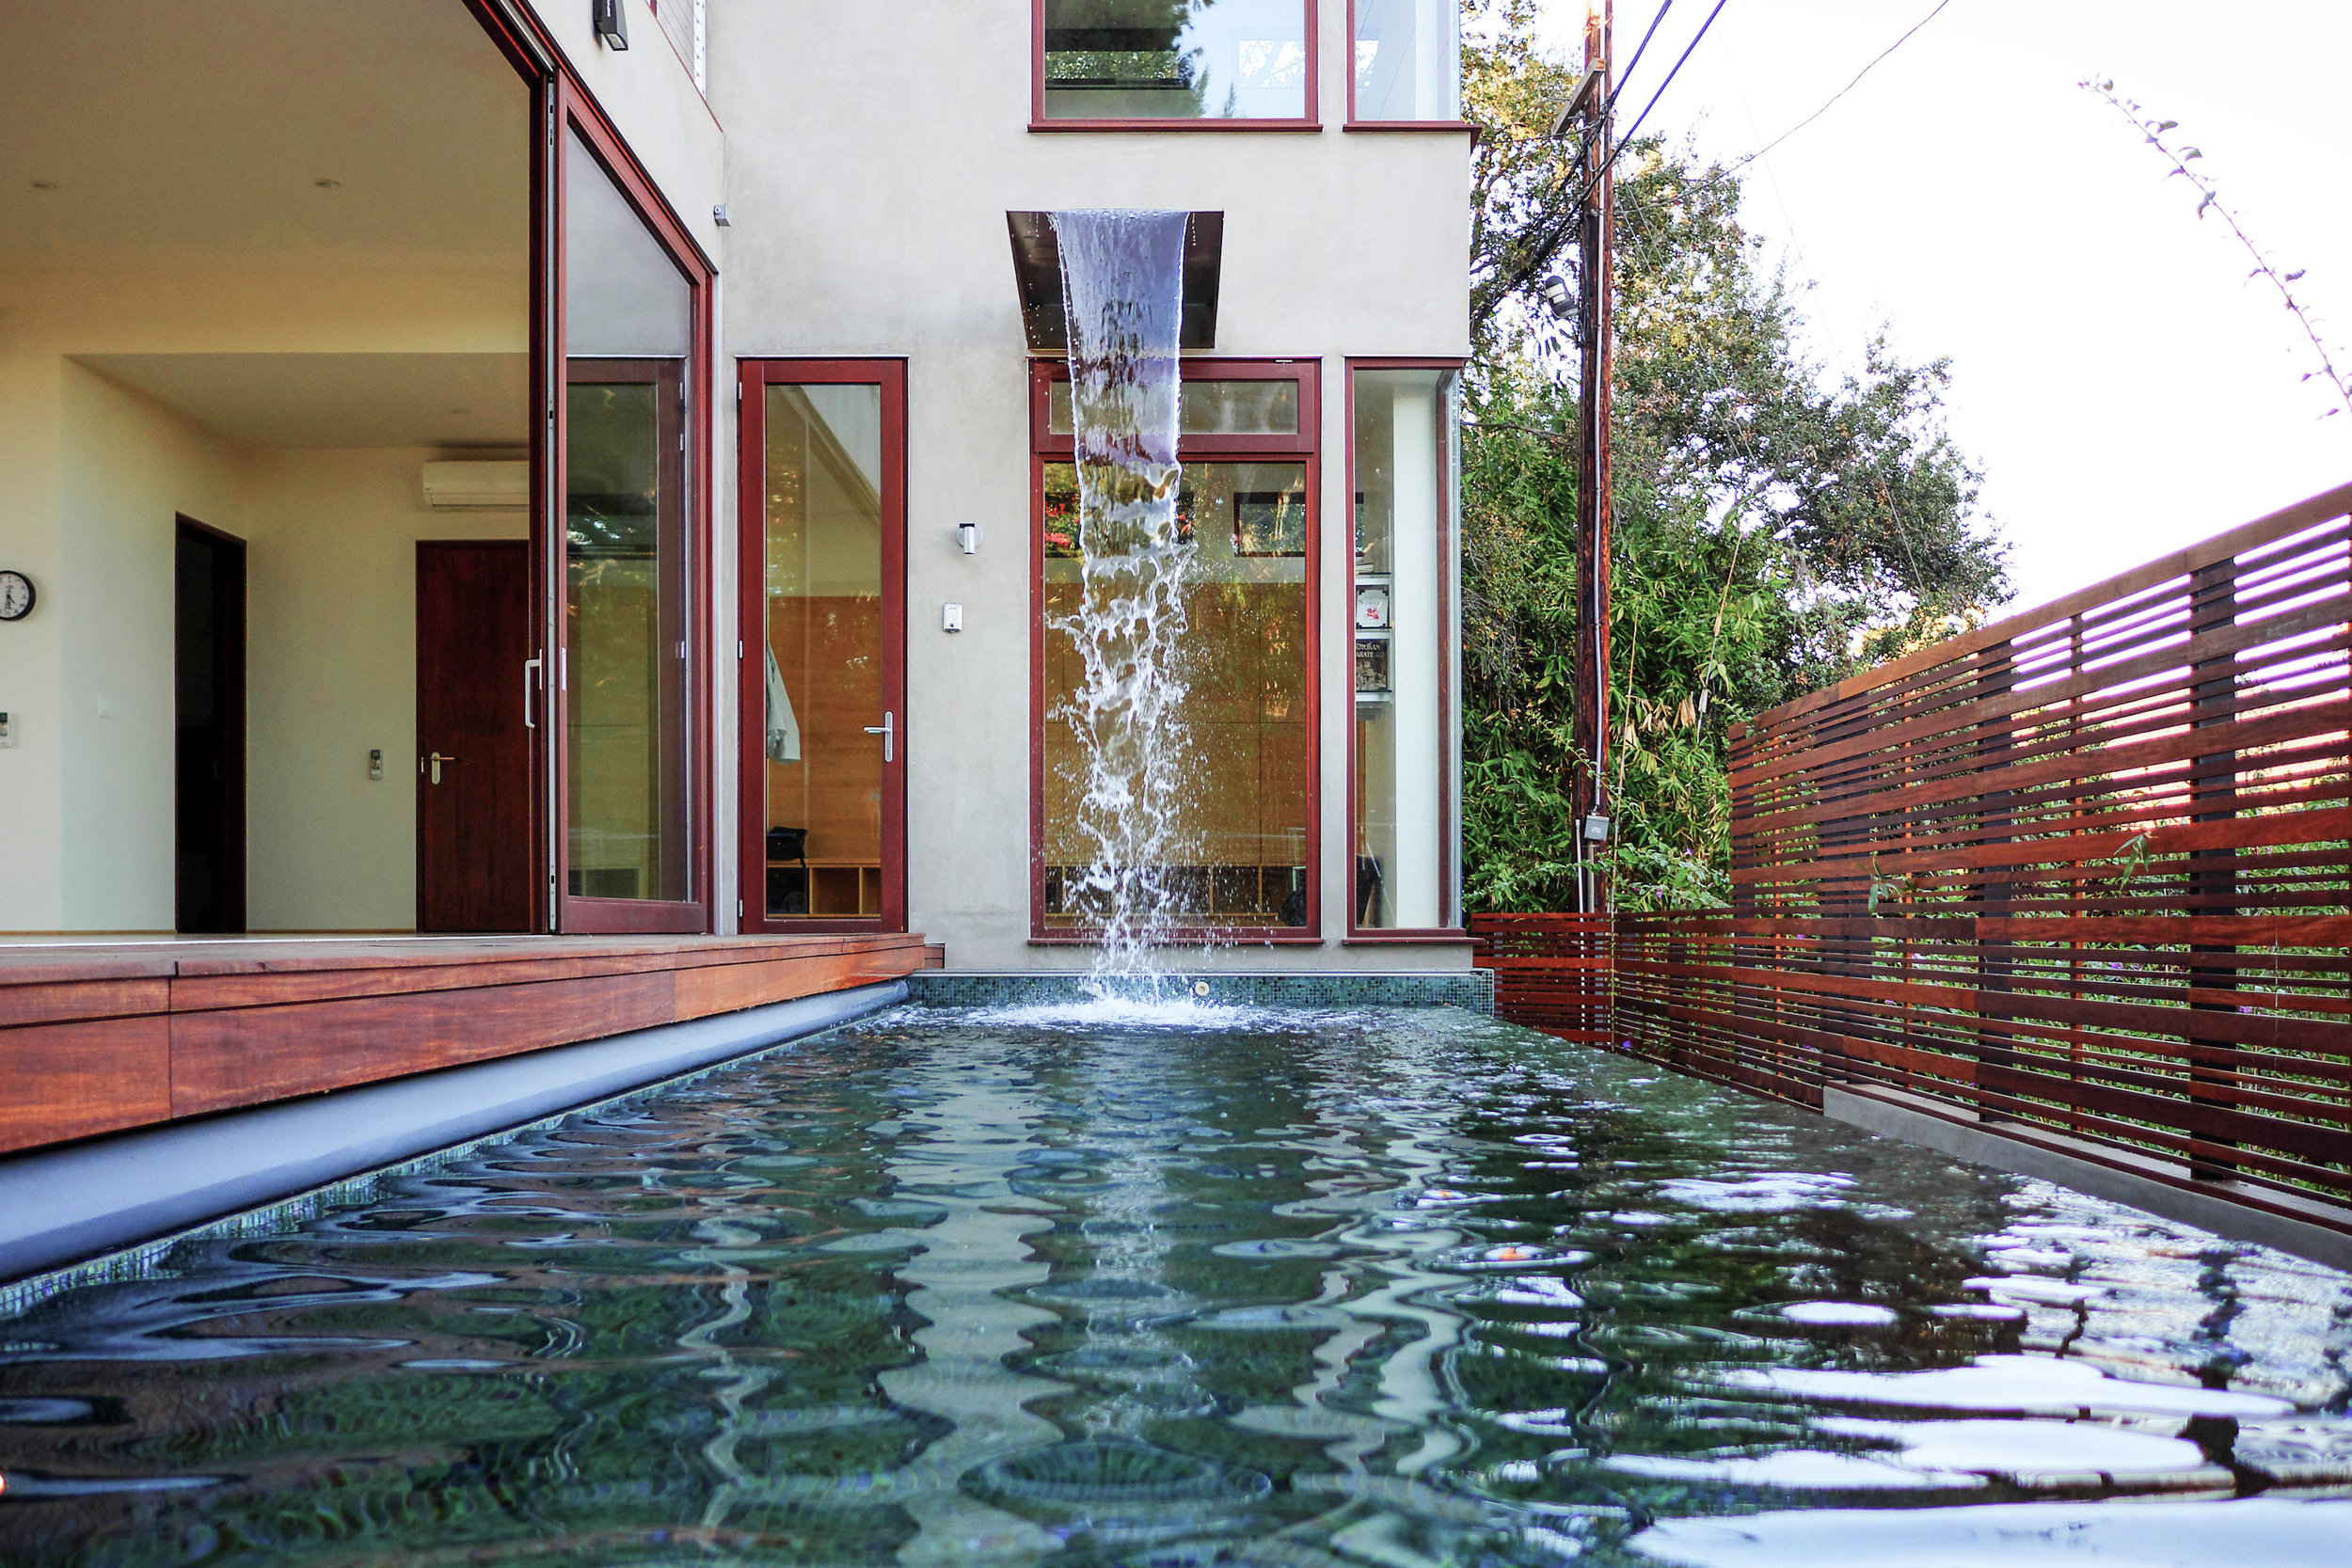 S.E.A.-Studio-Environmental-Architecture-David-Hertz-FAIA-El-Medio-House-Pacific-Palisades-sustainable-regenerative-restorative-design-residential-contemporary-modern-wood-concrete-patio-green-building-view-pool-tile-garden-westside-living-studioea-3.jpg